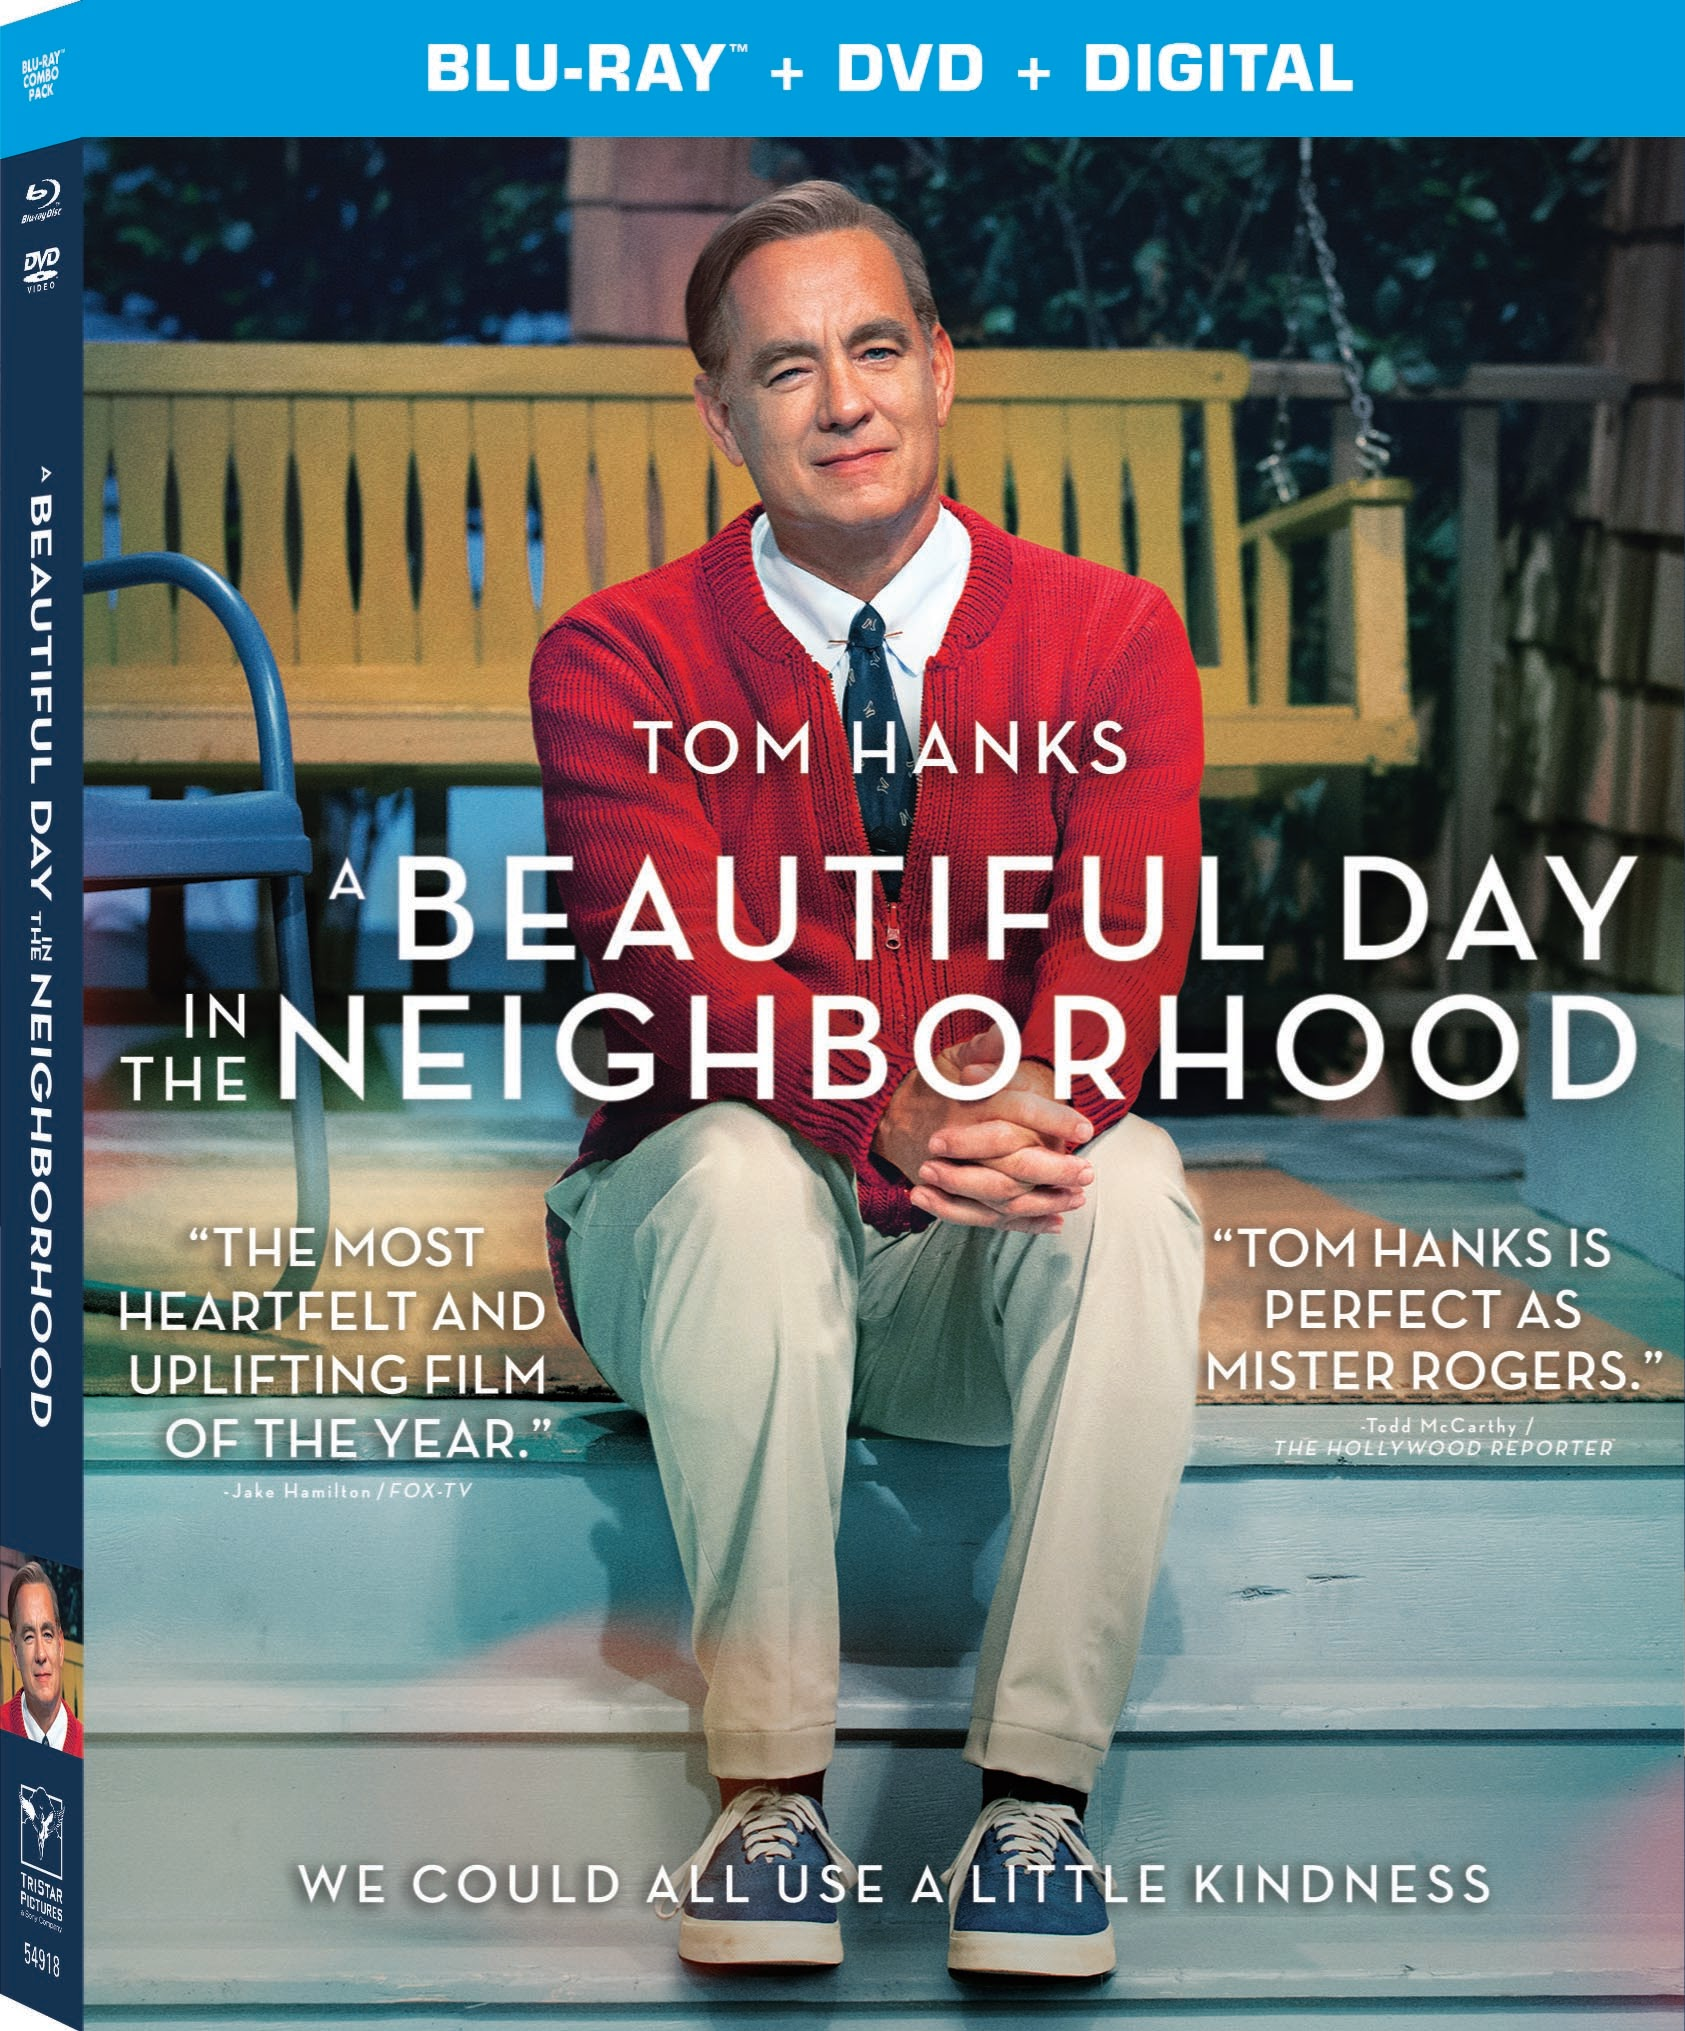 A Beautiful Day In The Neighborhood And Nextdoor Offer Good Neighbors A Chance To Win On Random Acts Of Kindness Day Justlovemovies Com